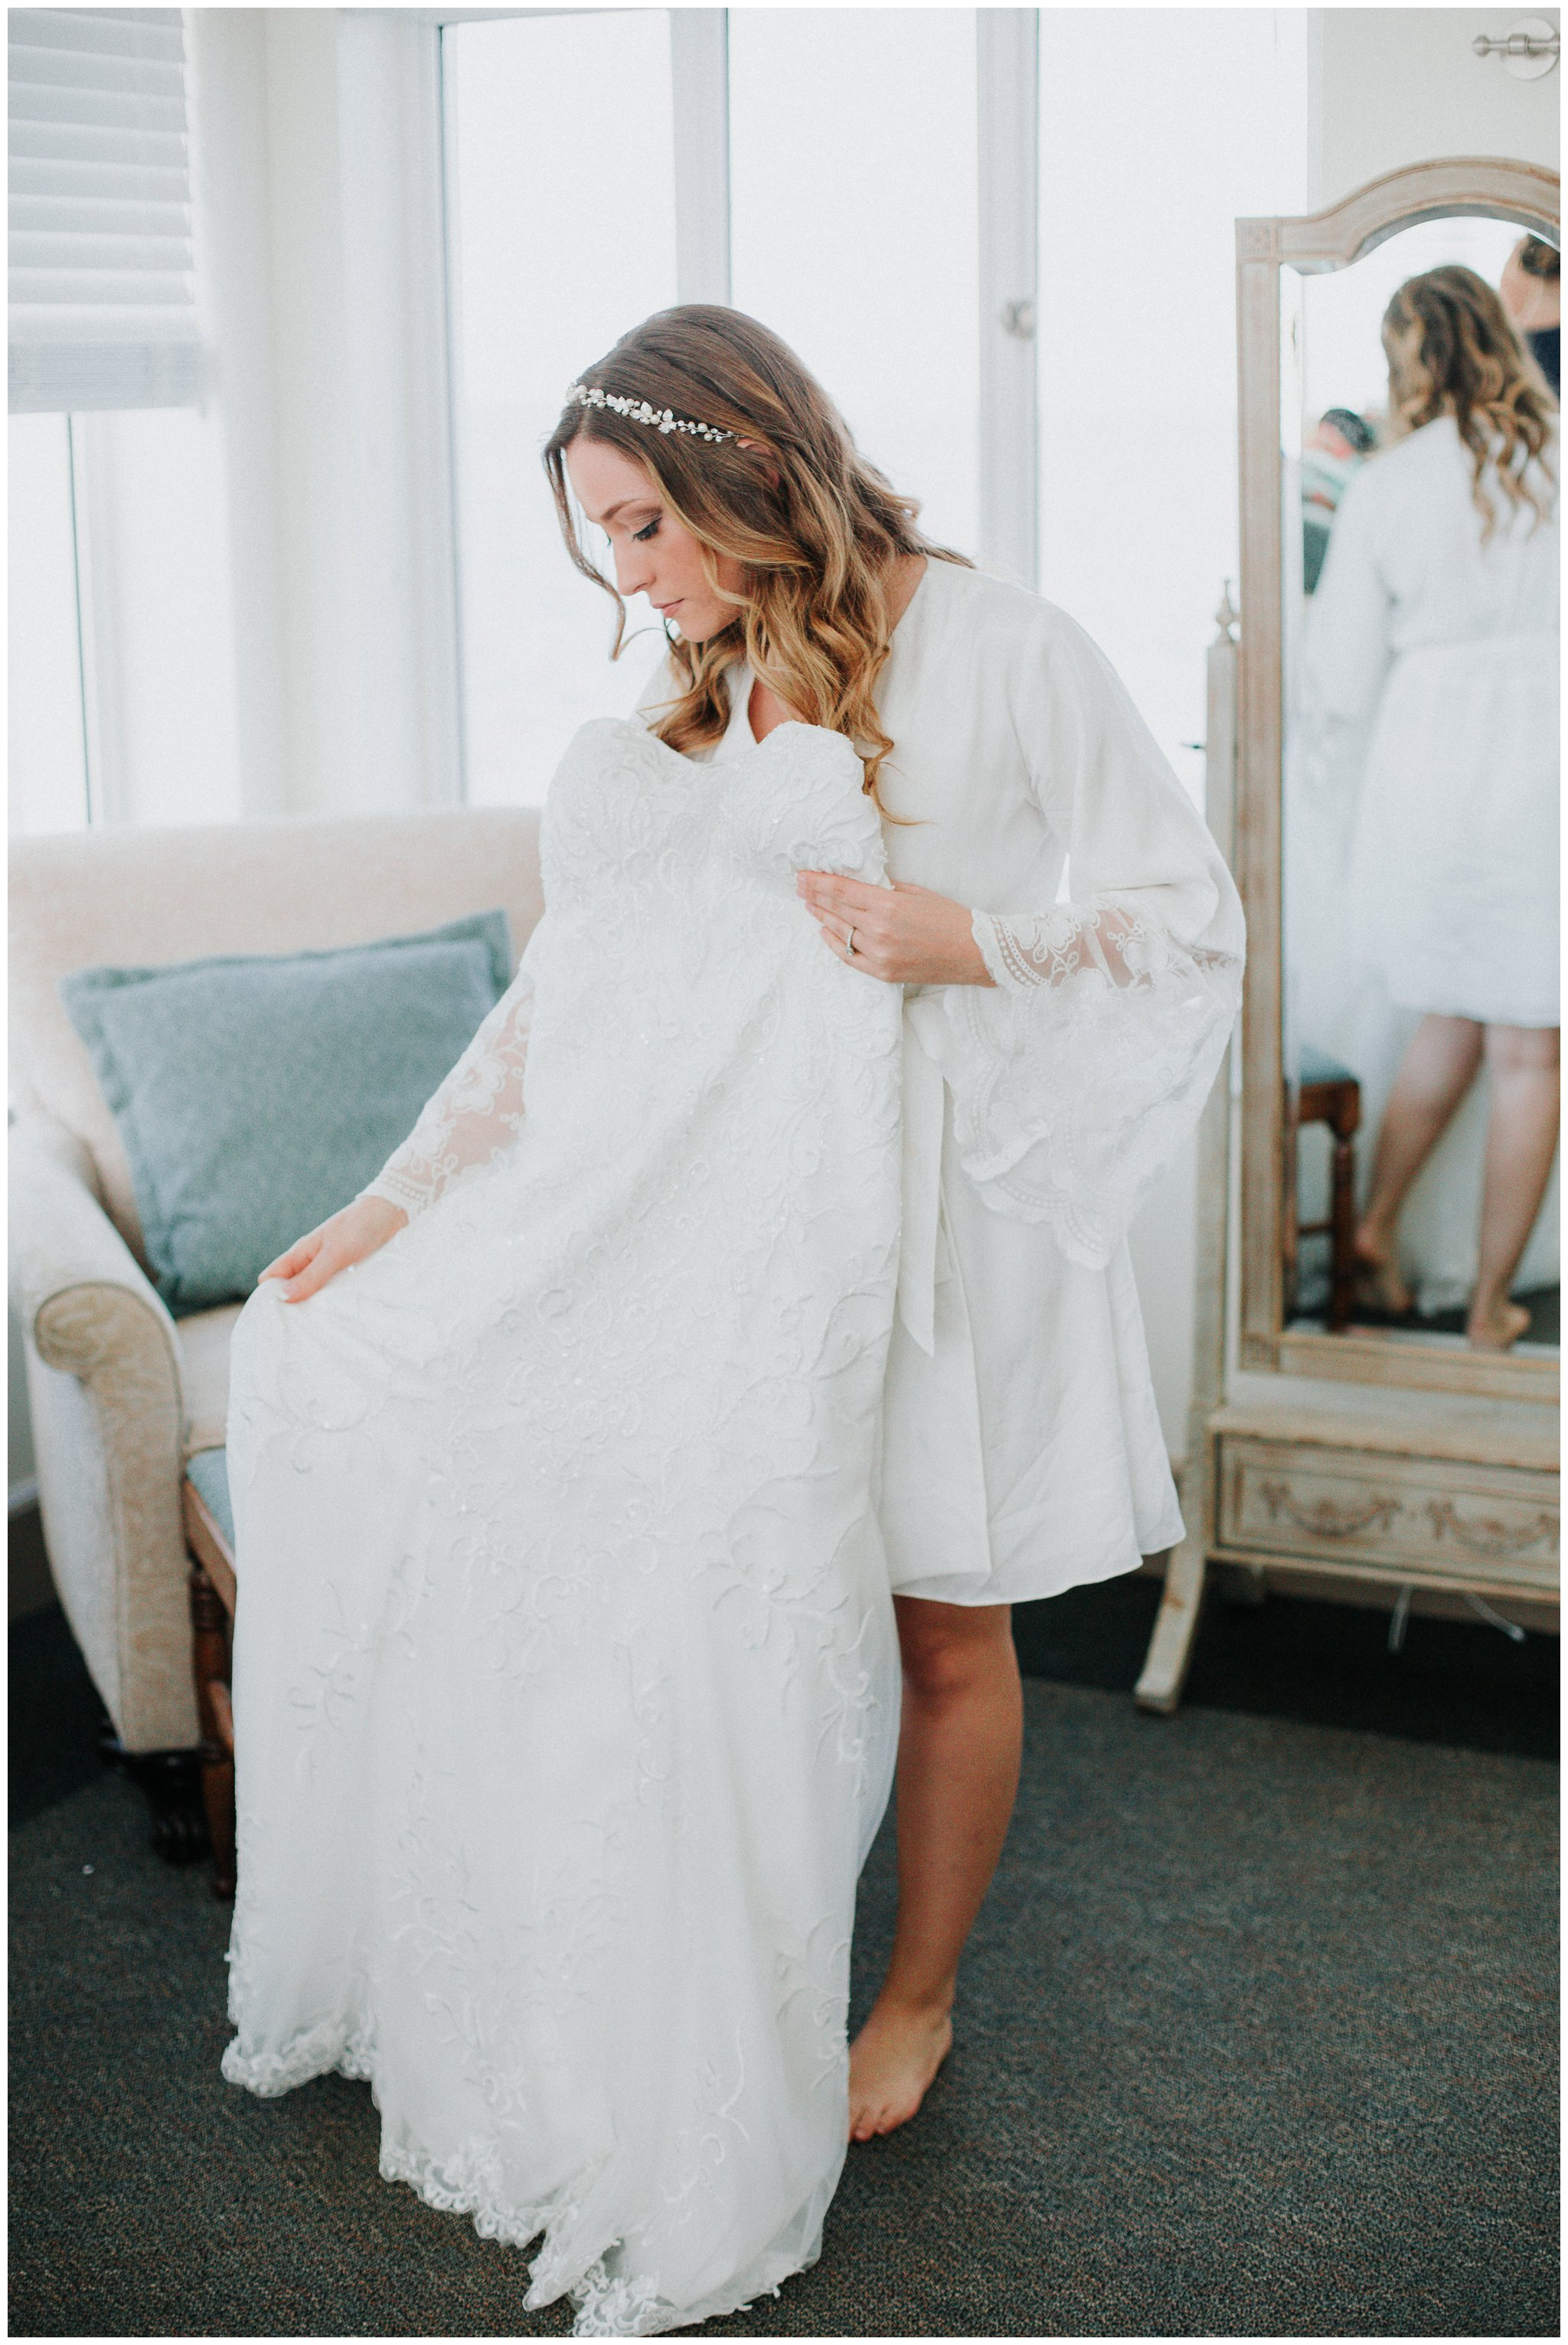 I loved her gorgeous wedding gown. It was perfect for the coastal setting.